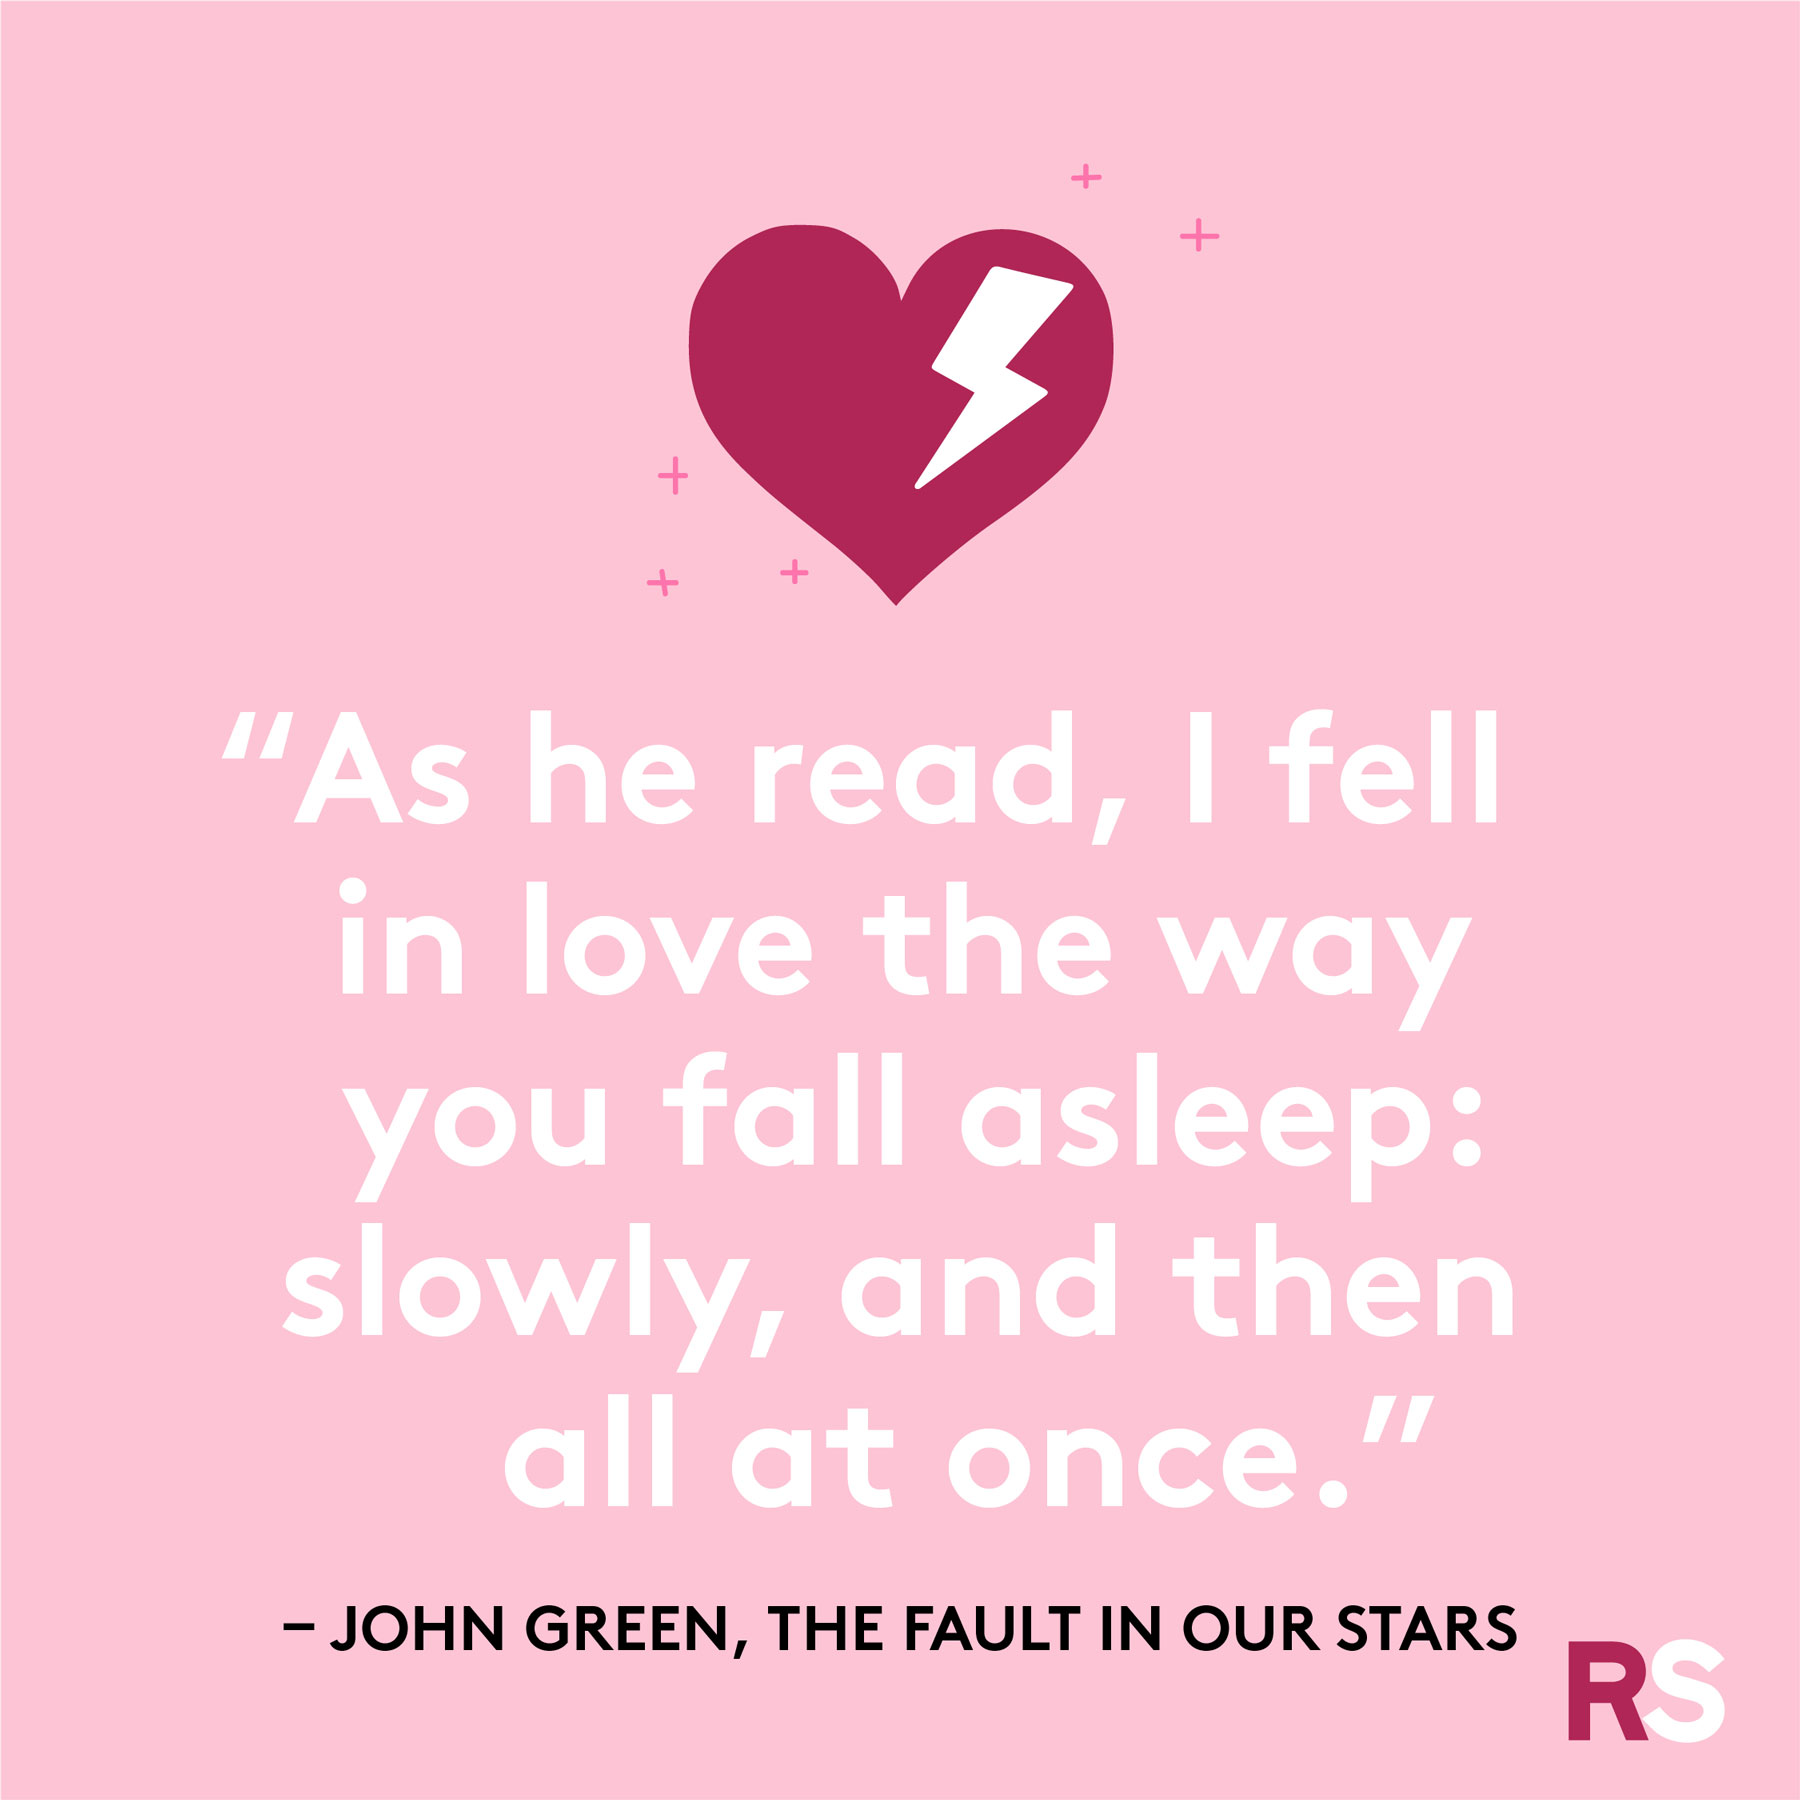 """As he read, I fell in love the way you fall asleep: slowly, and then all at once."""